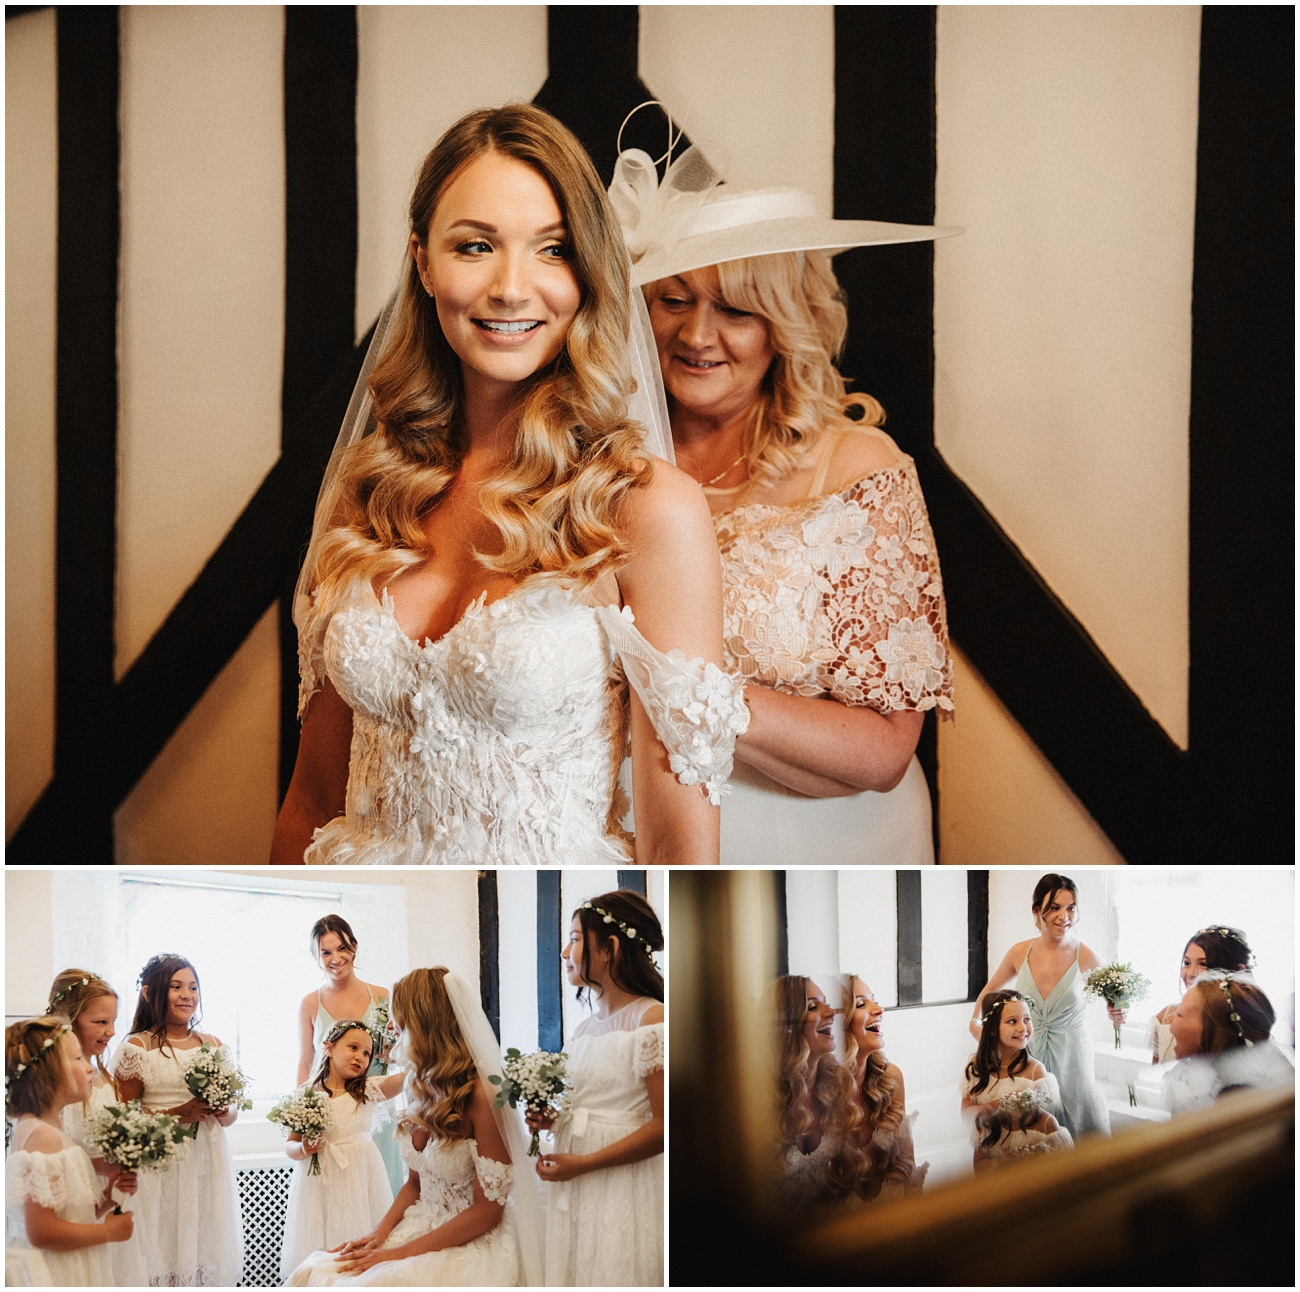 Mum helps her daughter with the finishing touches of her wedding dress and also shares a joke with the bridal party